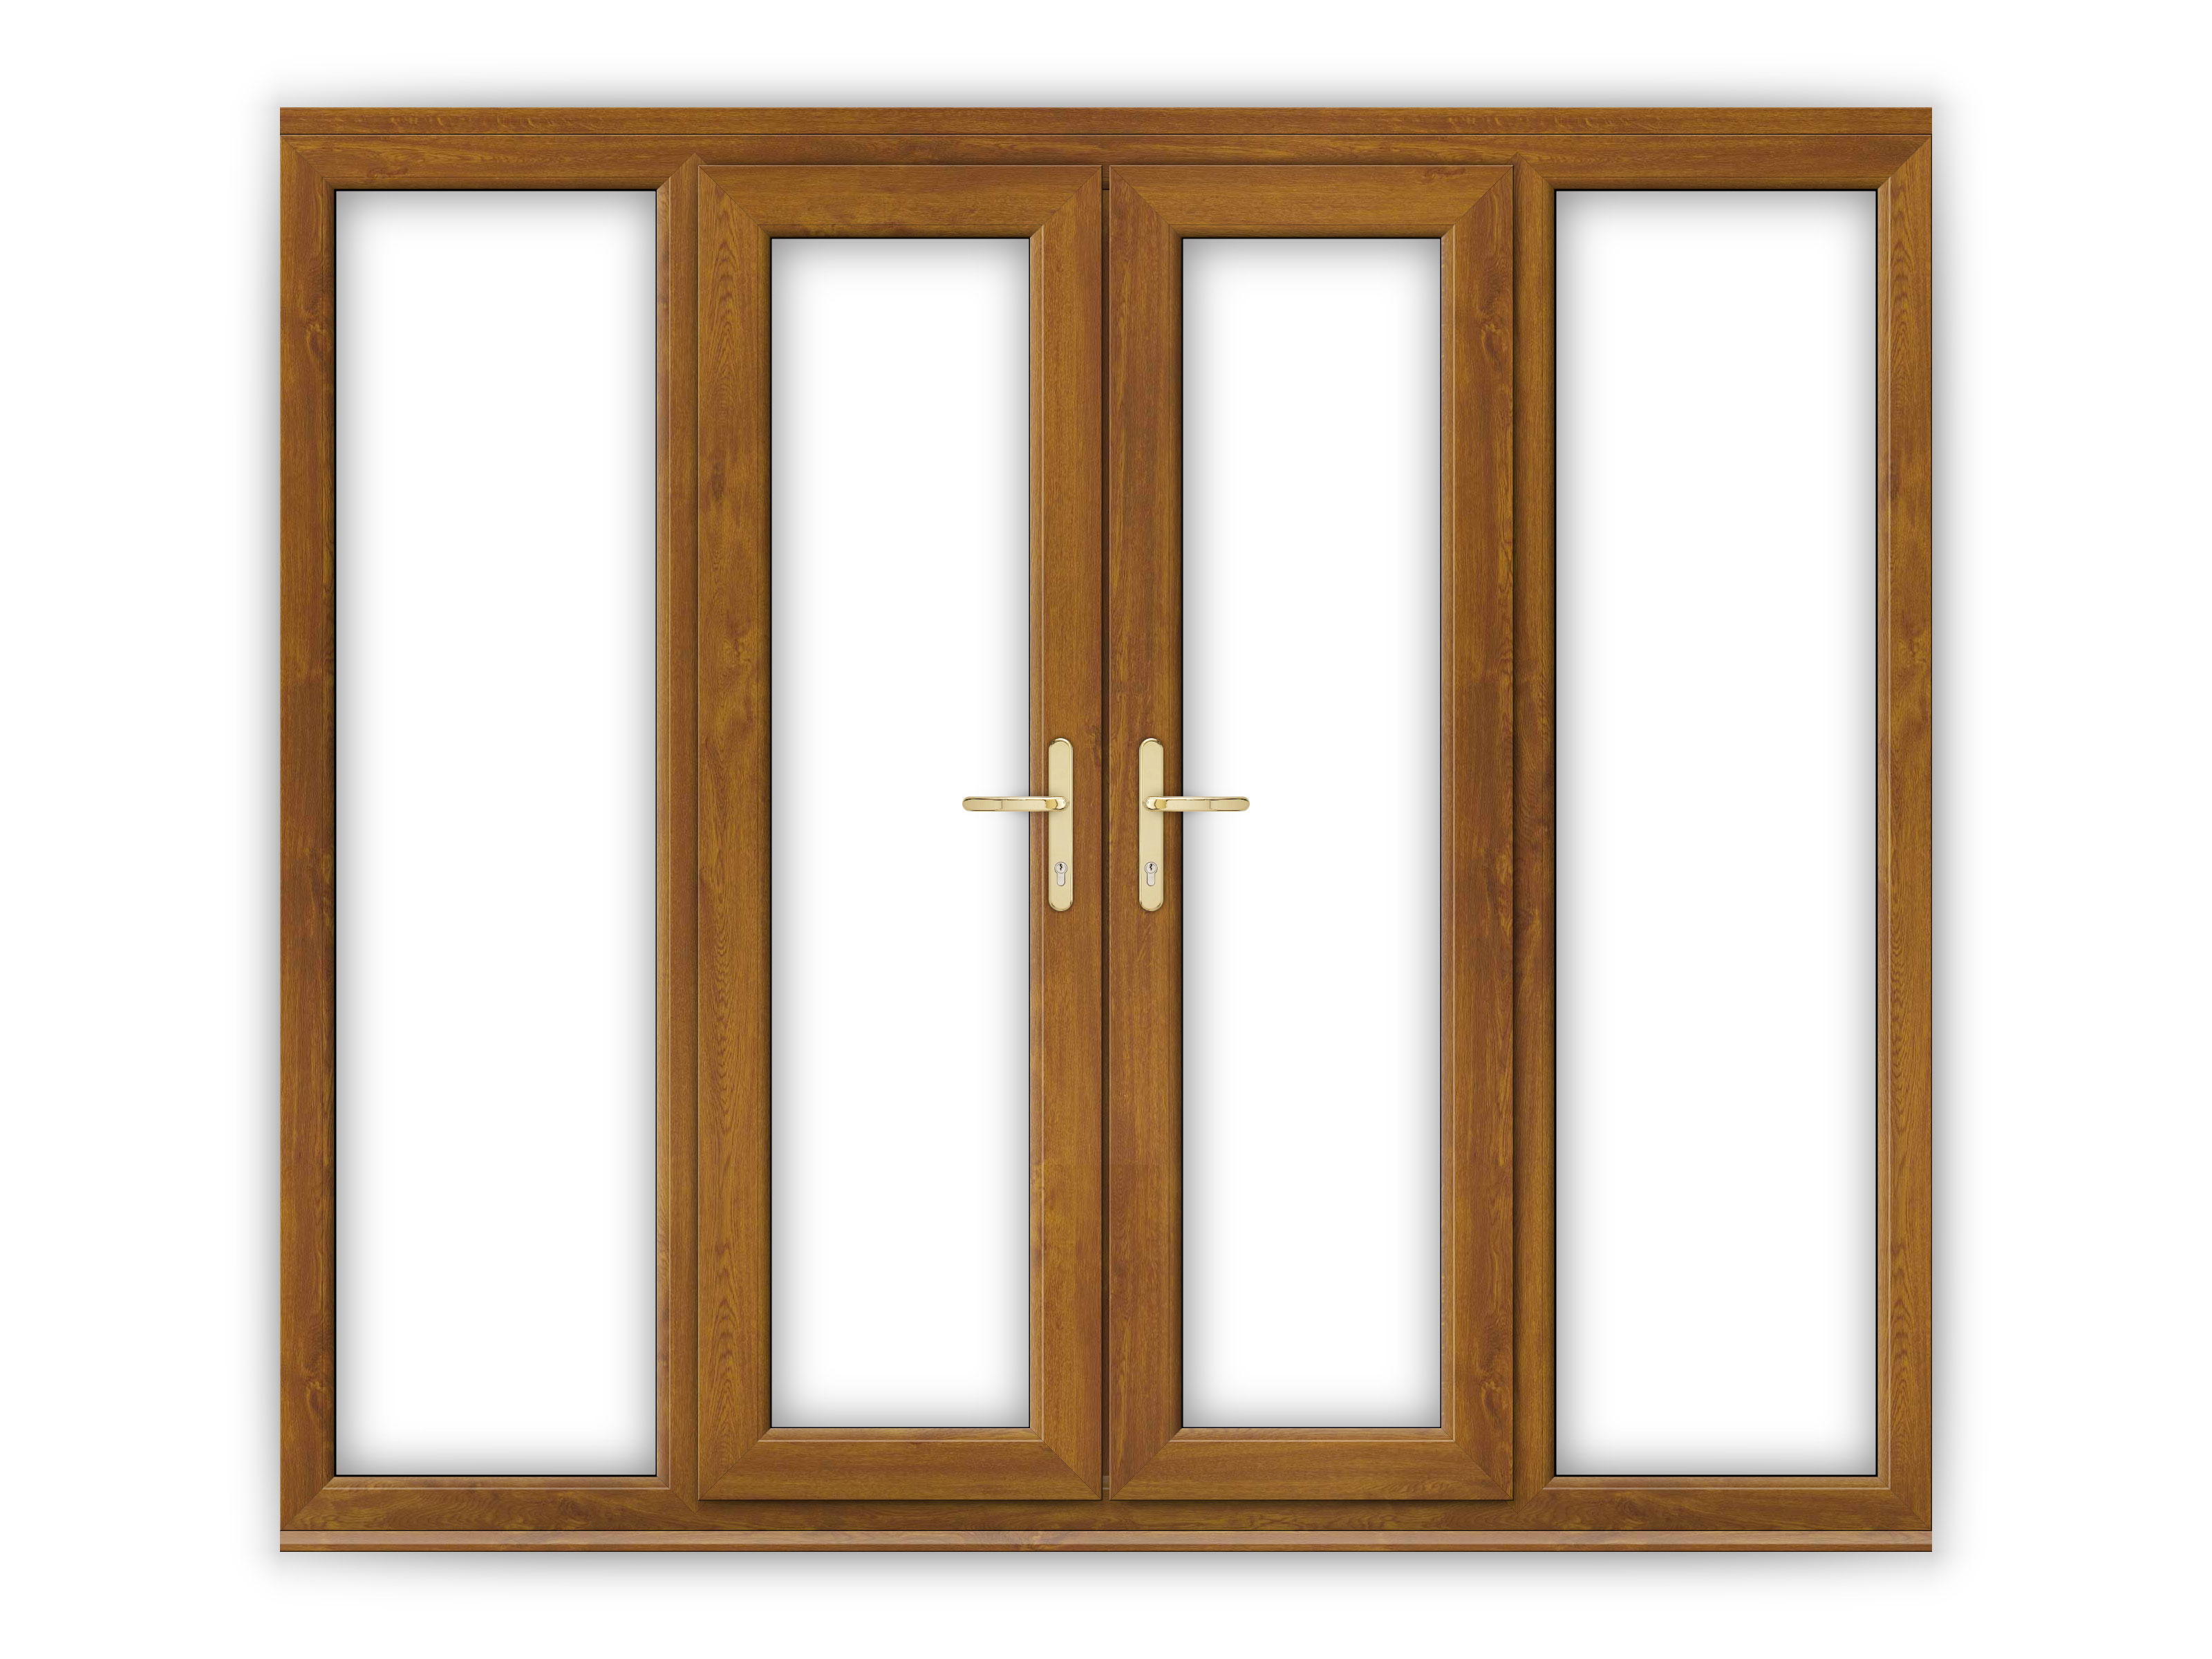 4ft golden oak upvc french doors with wide side panels for Upvc french doors 4ft